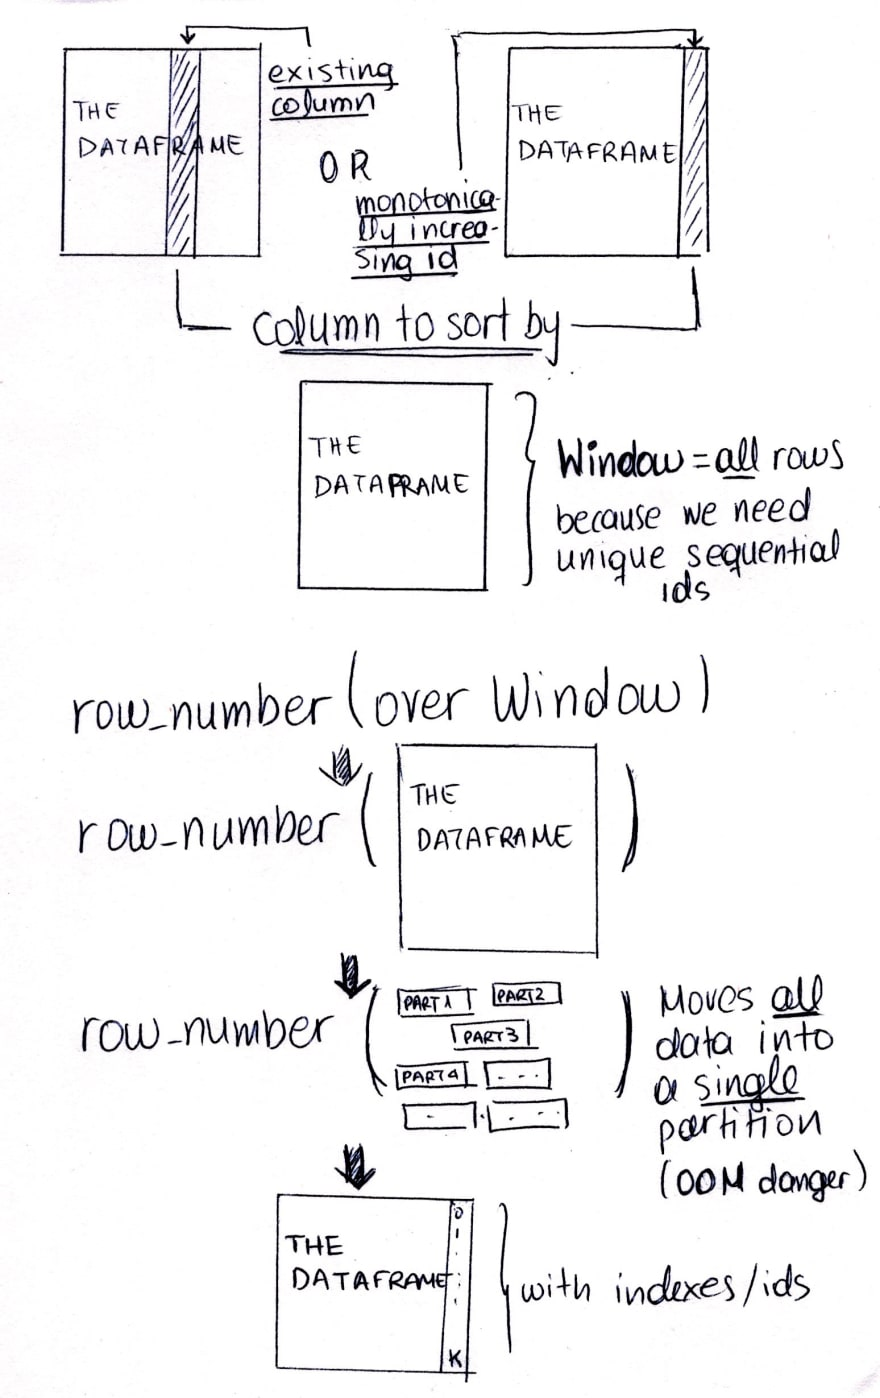 Using row_number() over Window and the OOM danger